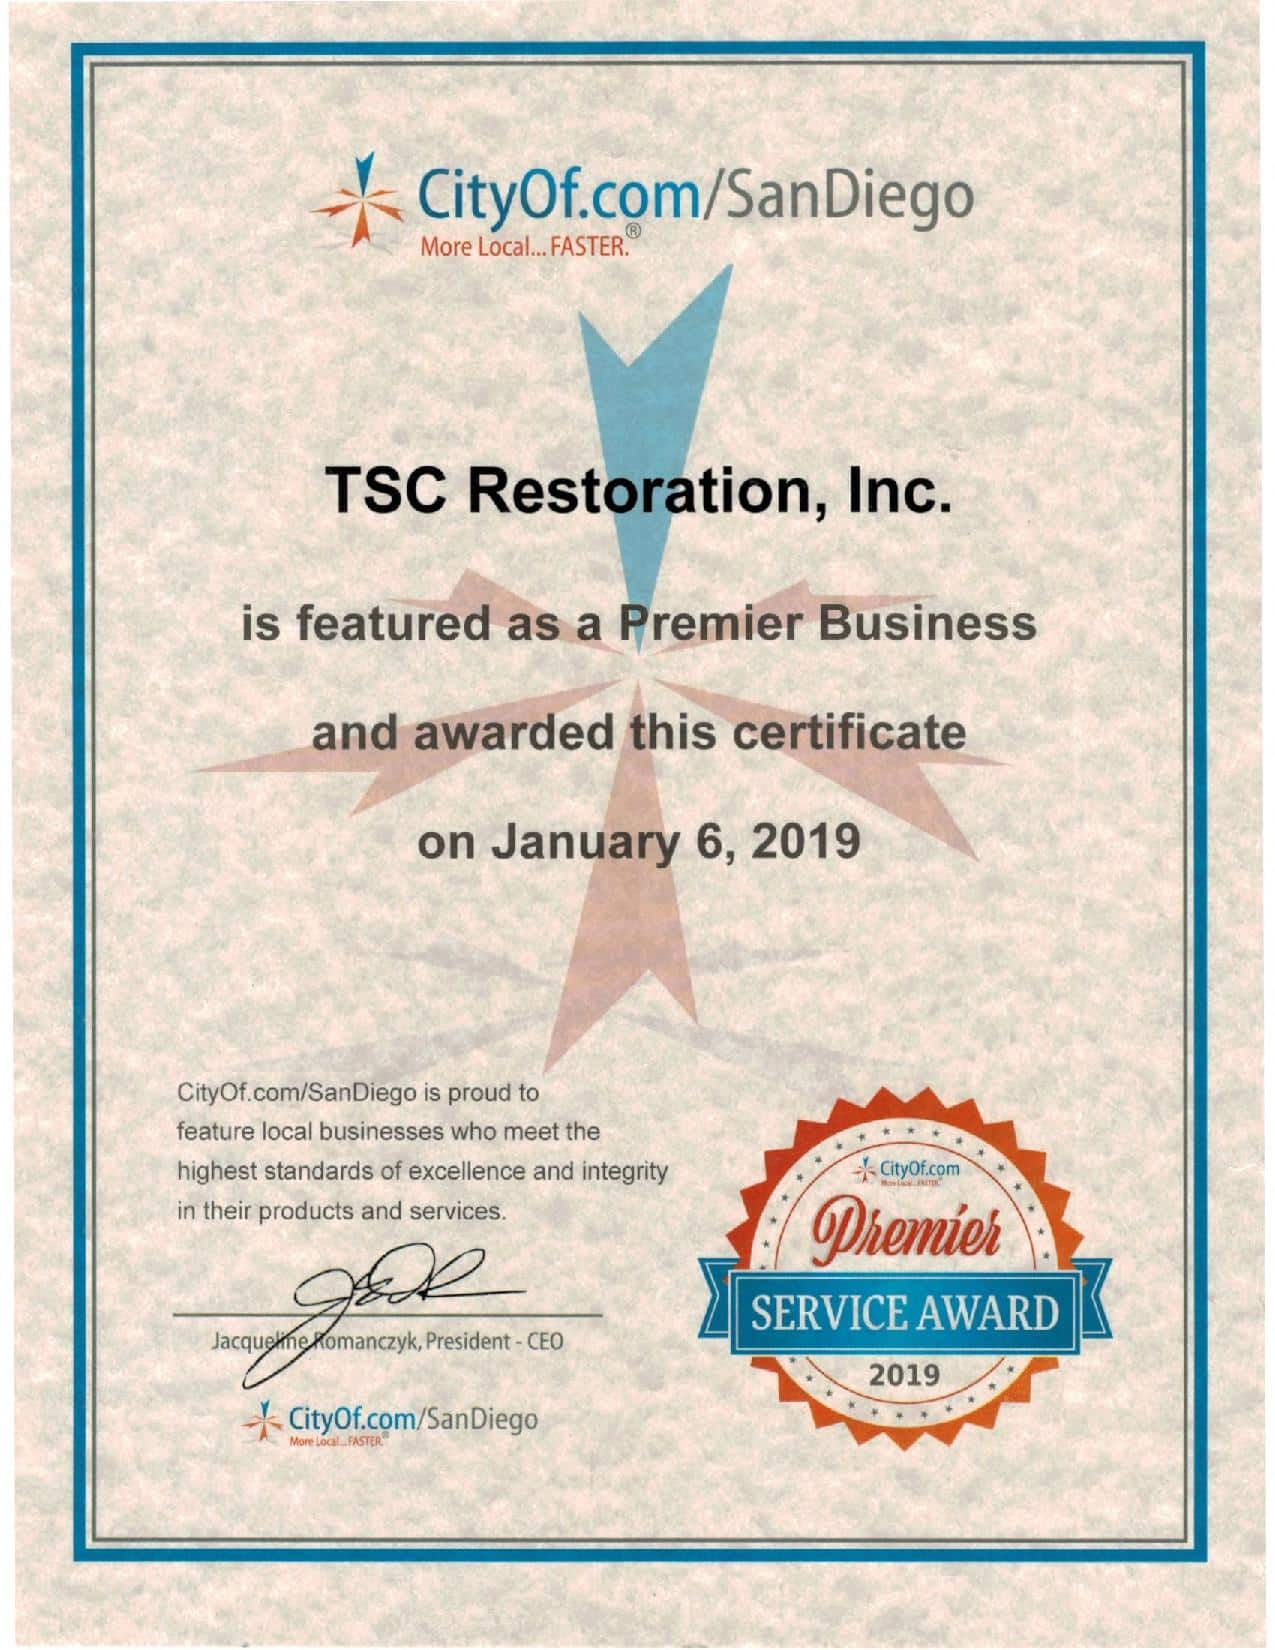 Premier Service Award from City Of San Diego 2019